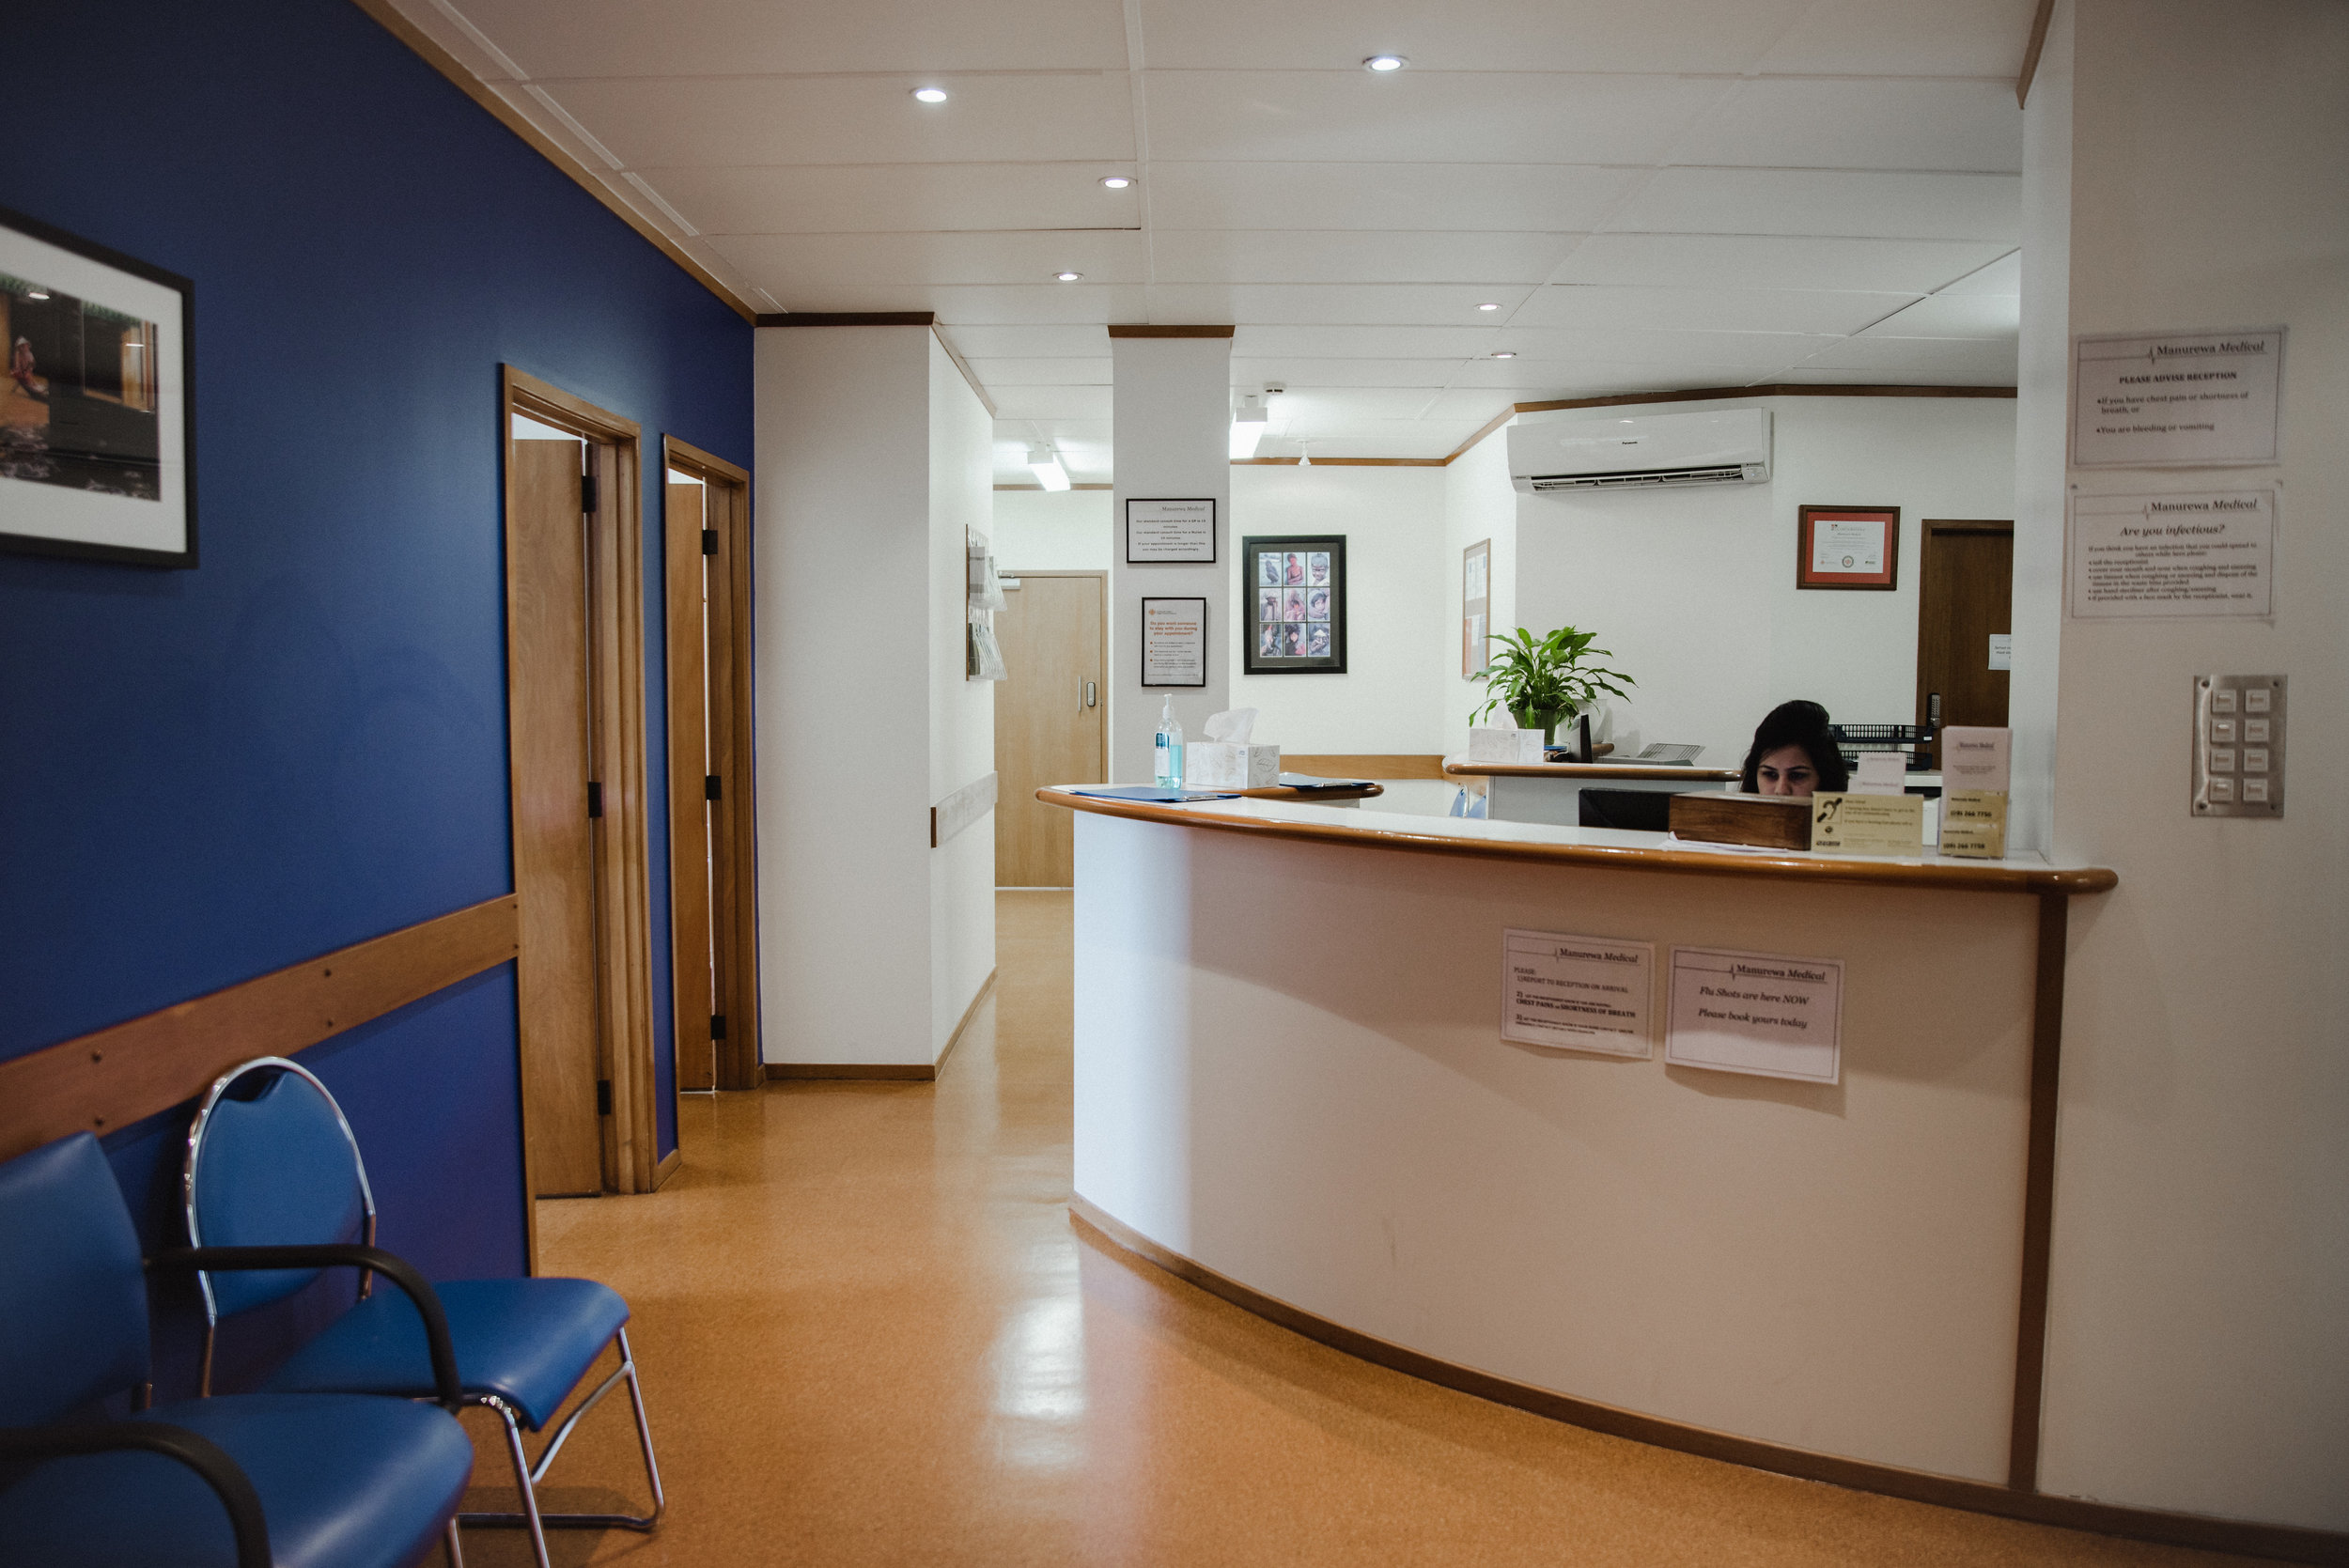 Manurewa Medical is a General Practice located in the Manurewa Medical Centre - 157 Great South Rd in Manurewa, South Auckland.